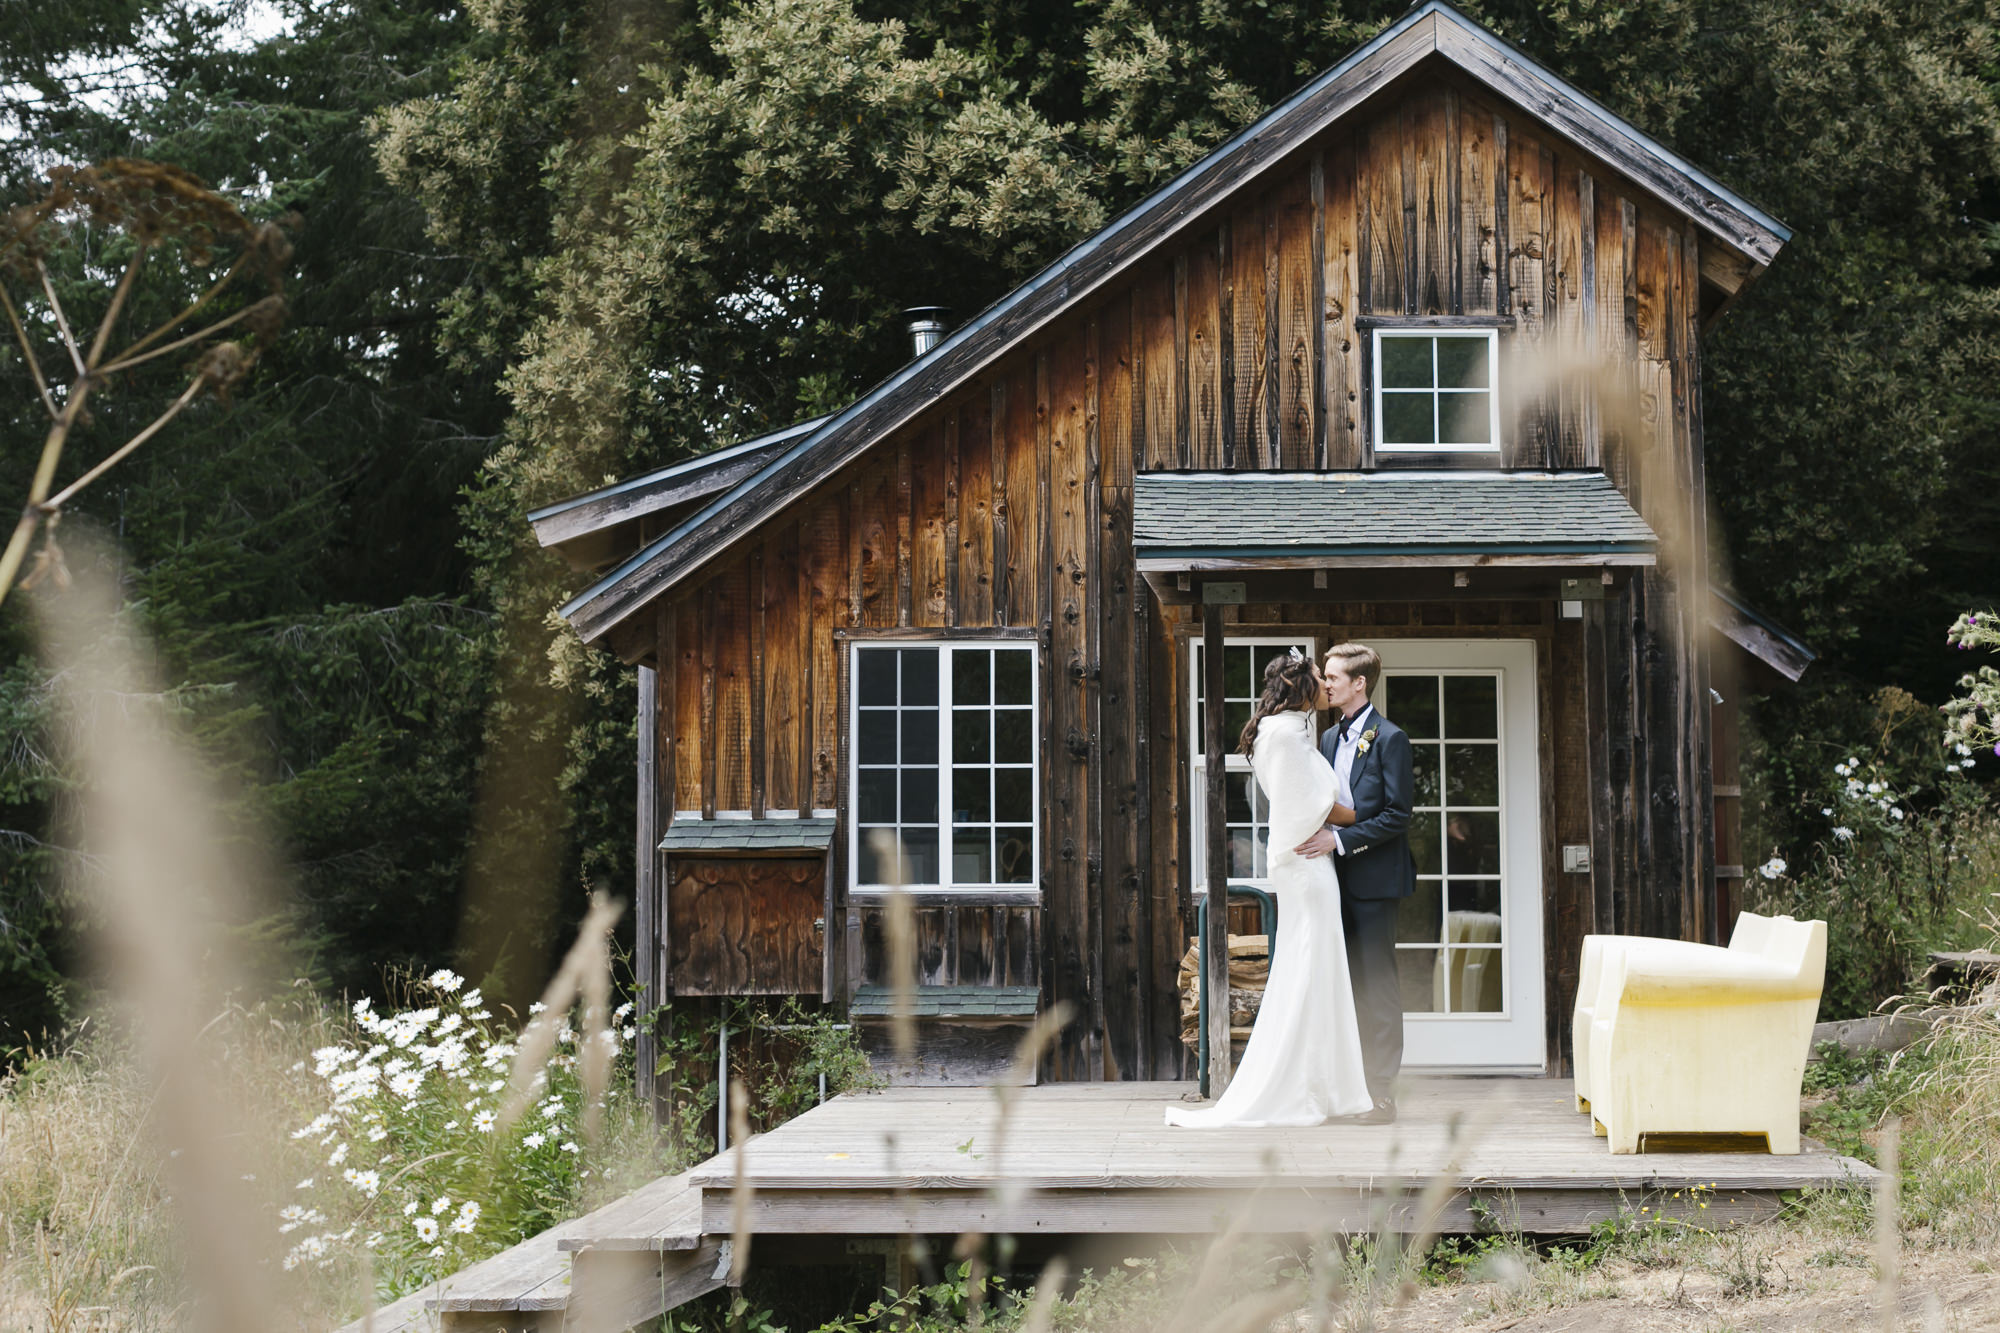 Wedding couple kisses in front of cabin on Mendocino farm